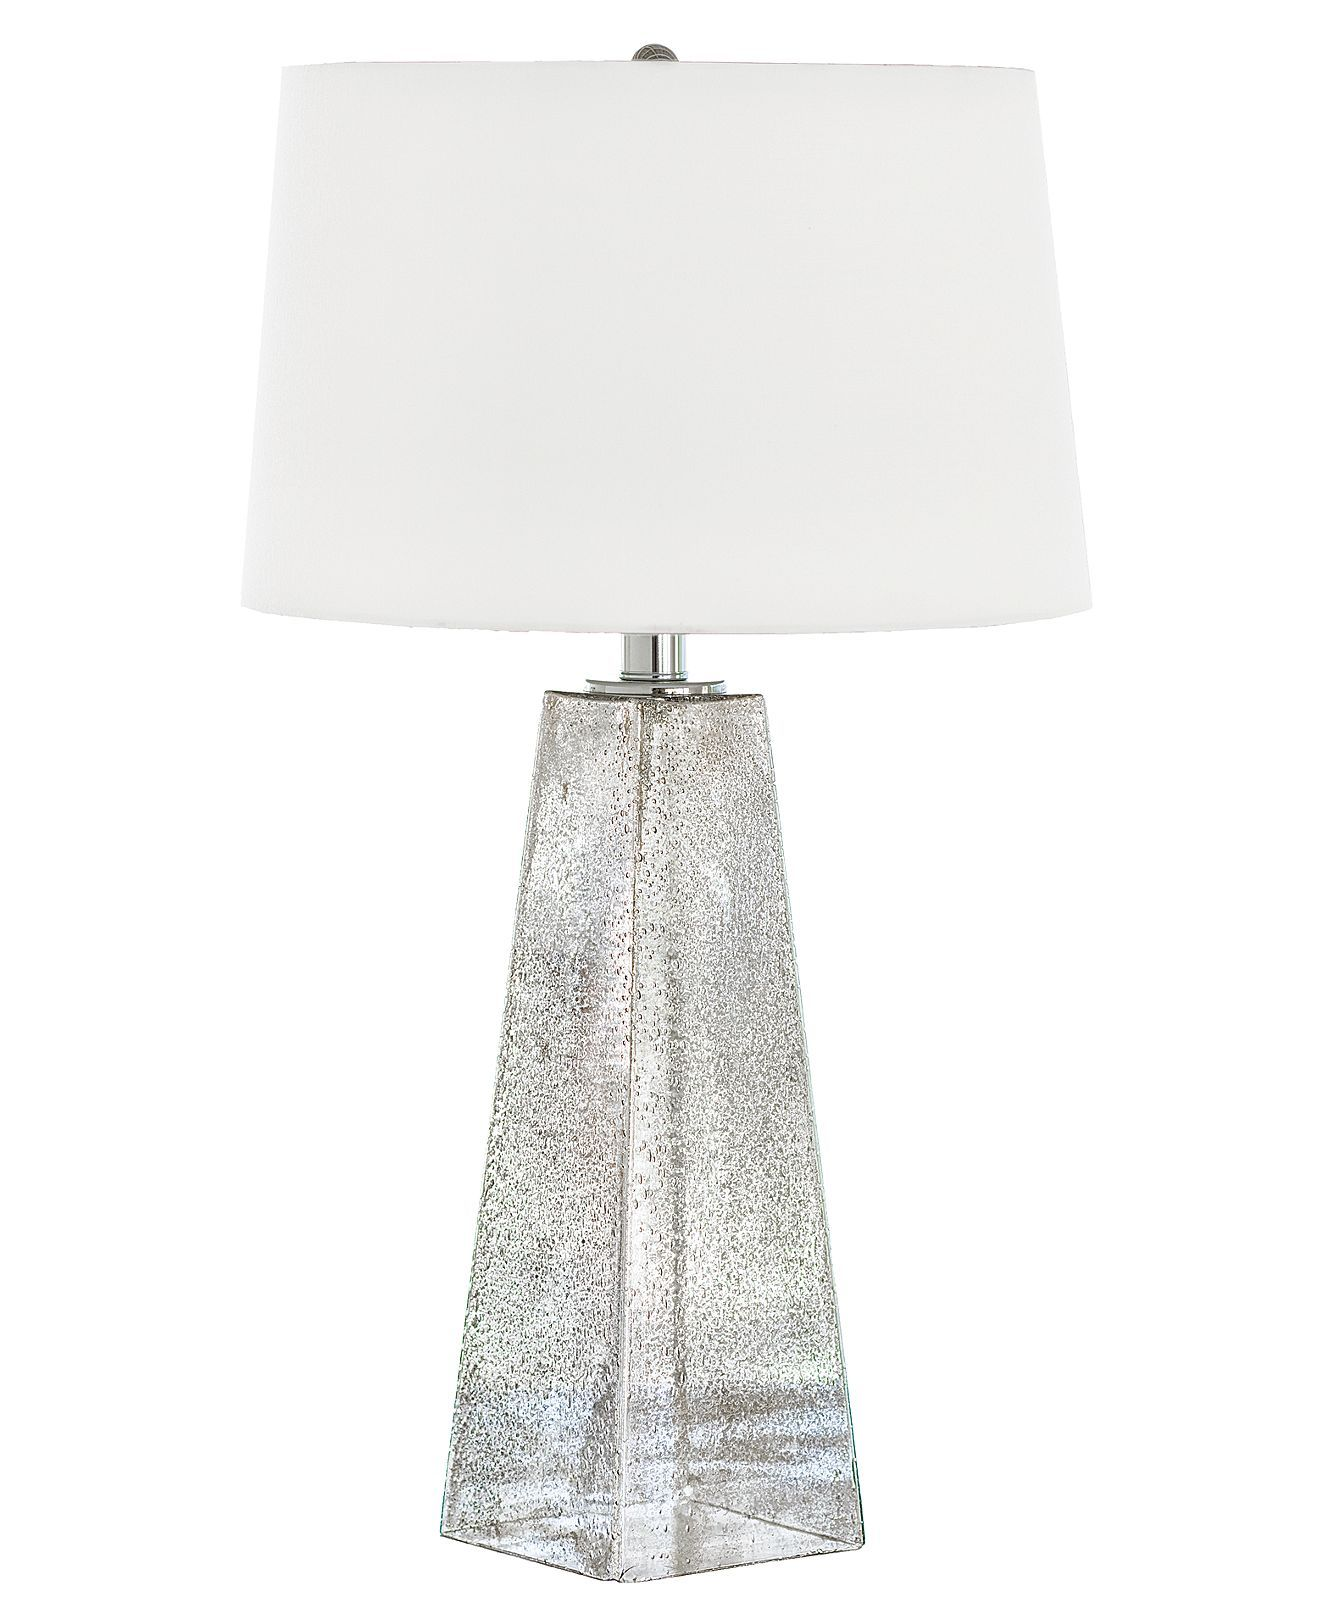 Regina Andrew Table Lamp, Stardust Antique Mercury Glass